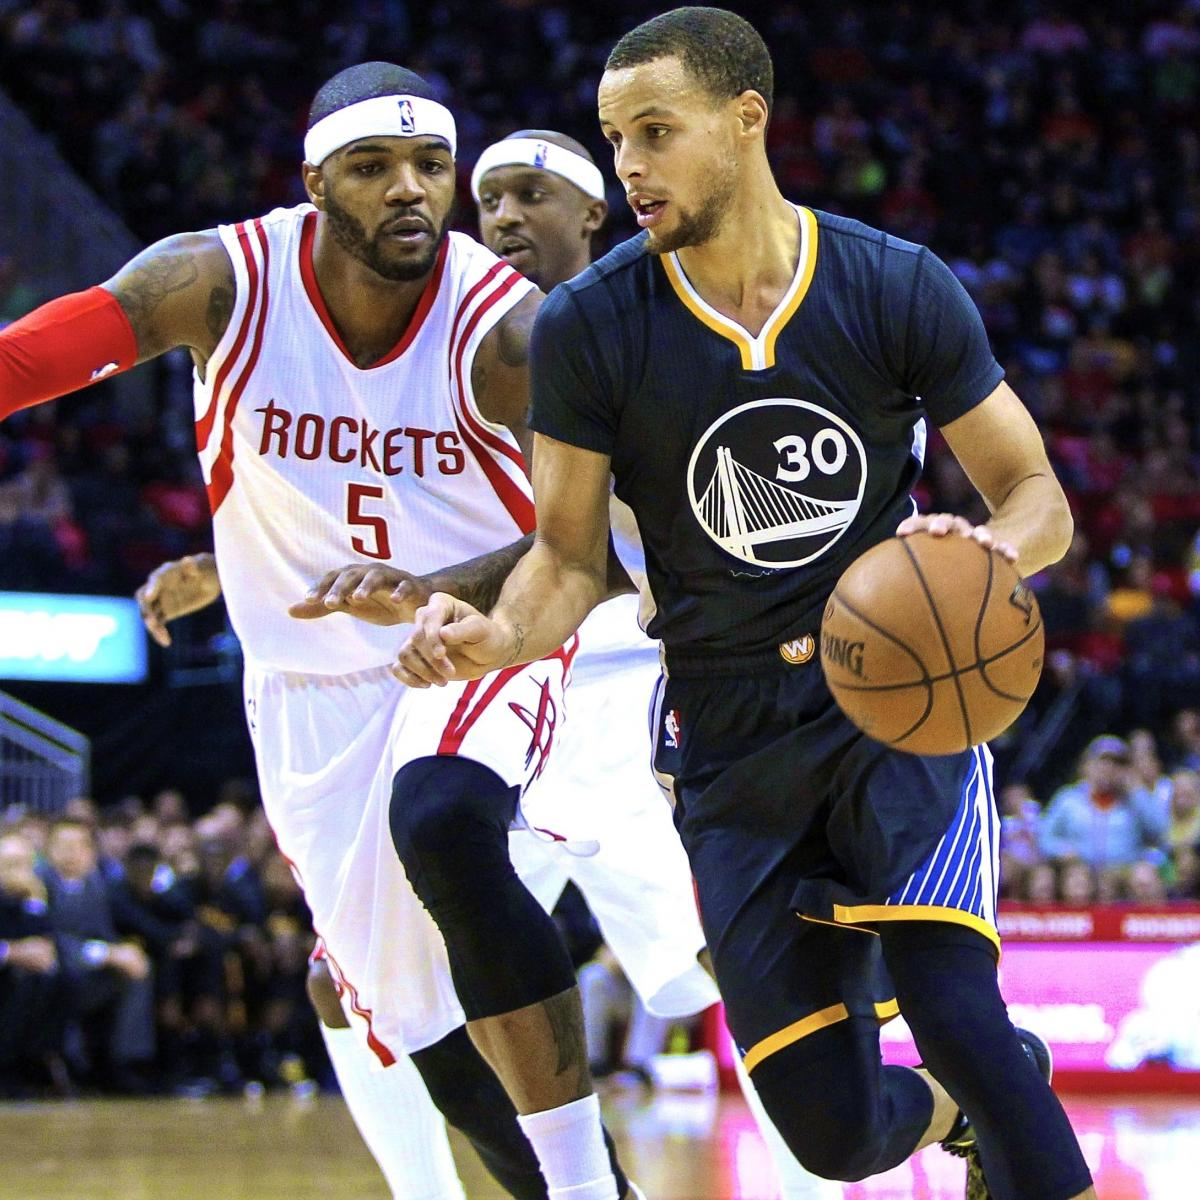 James Harden And Stephen Curry: Stephen Curry Passes James Harden In MVP Race And Other